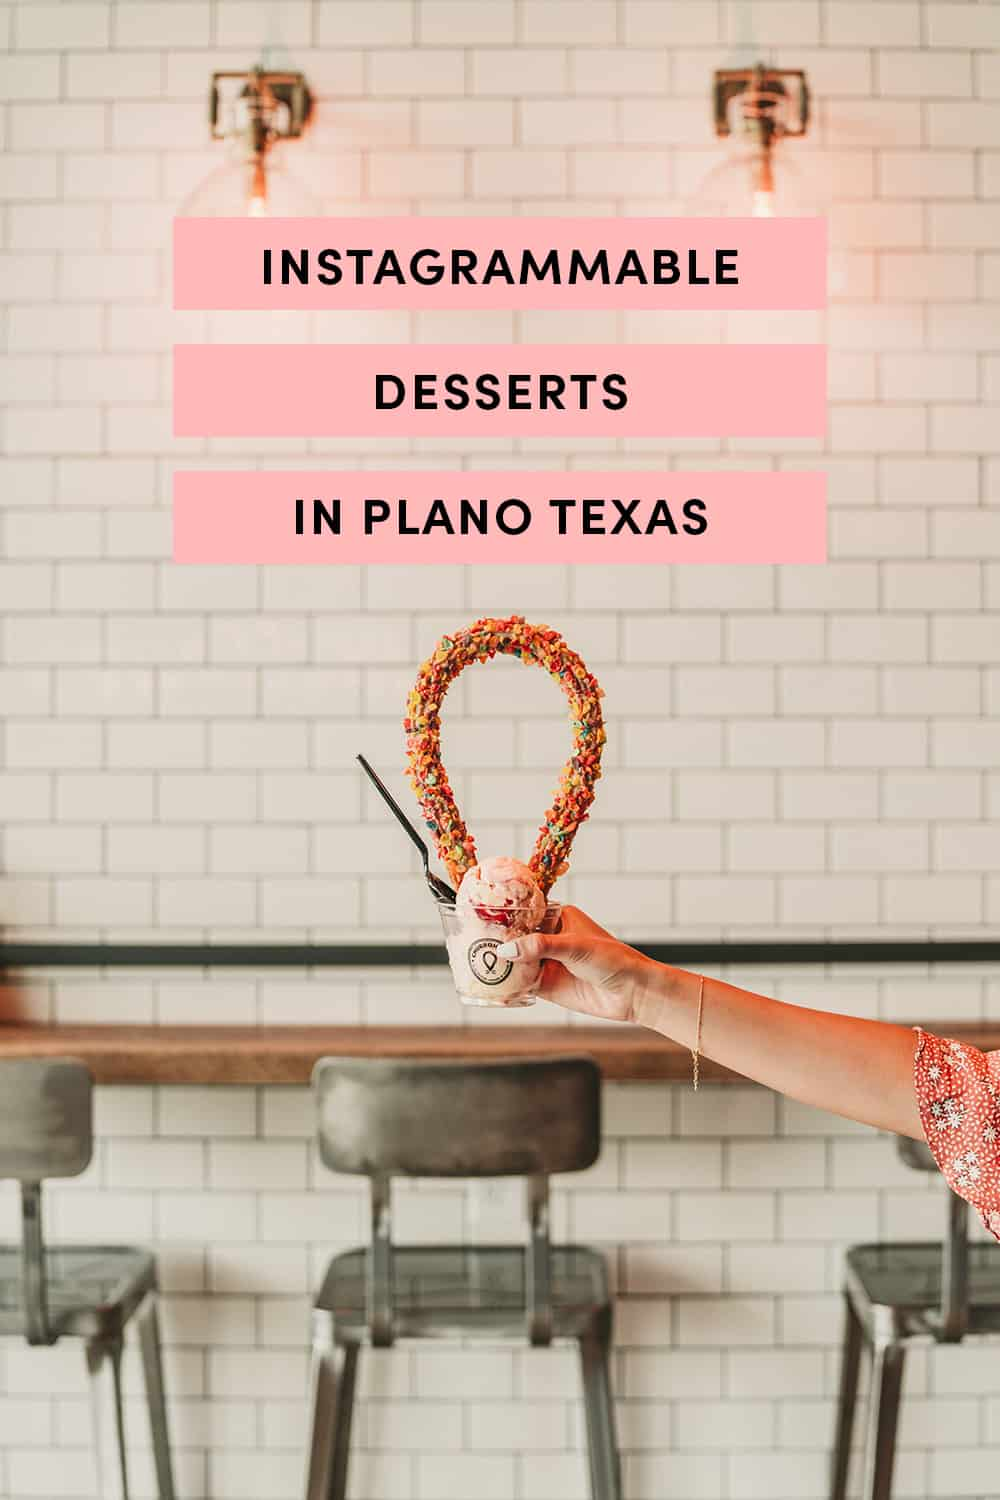 Instagrammable Desserts in Plano Texas